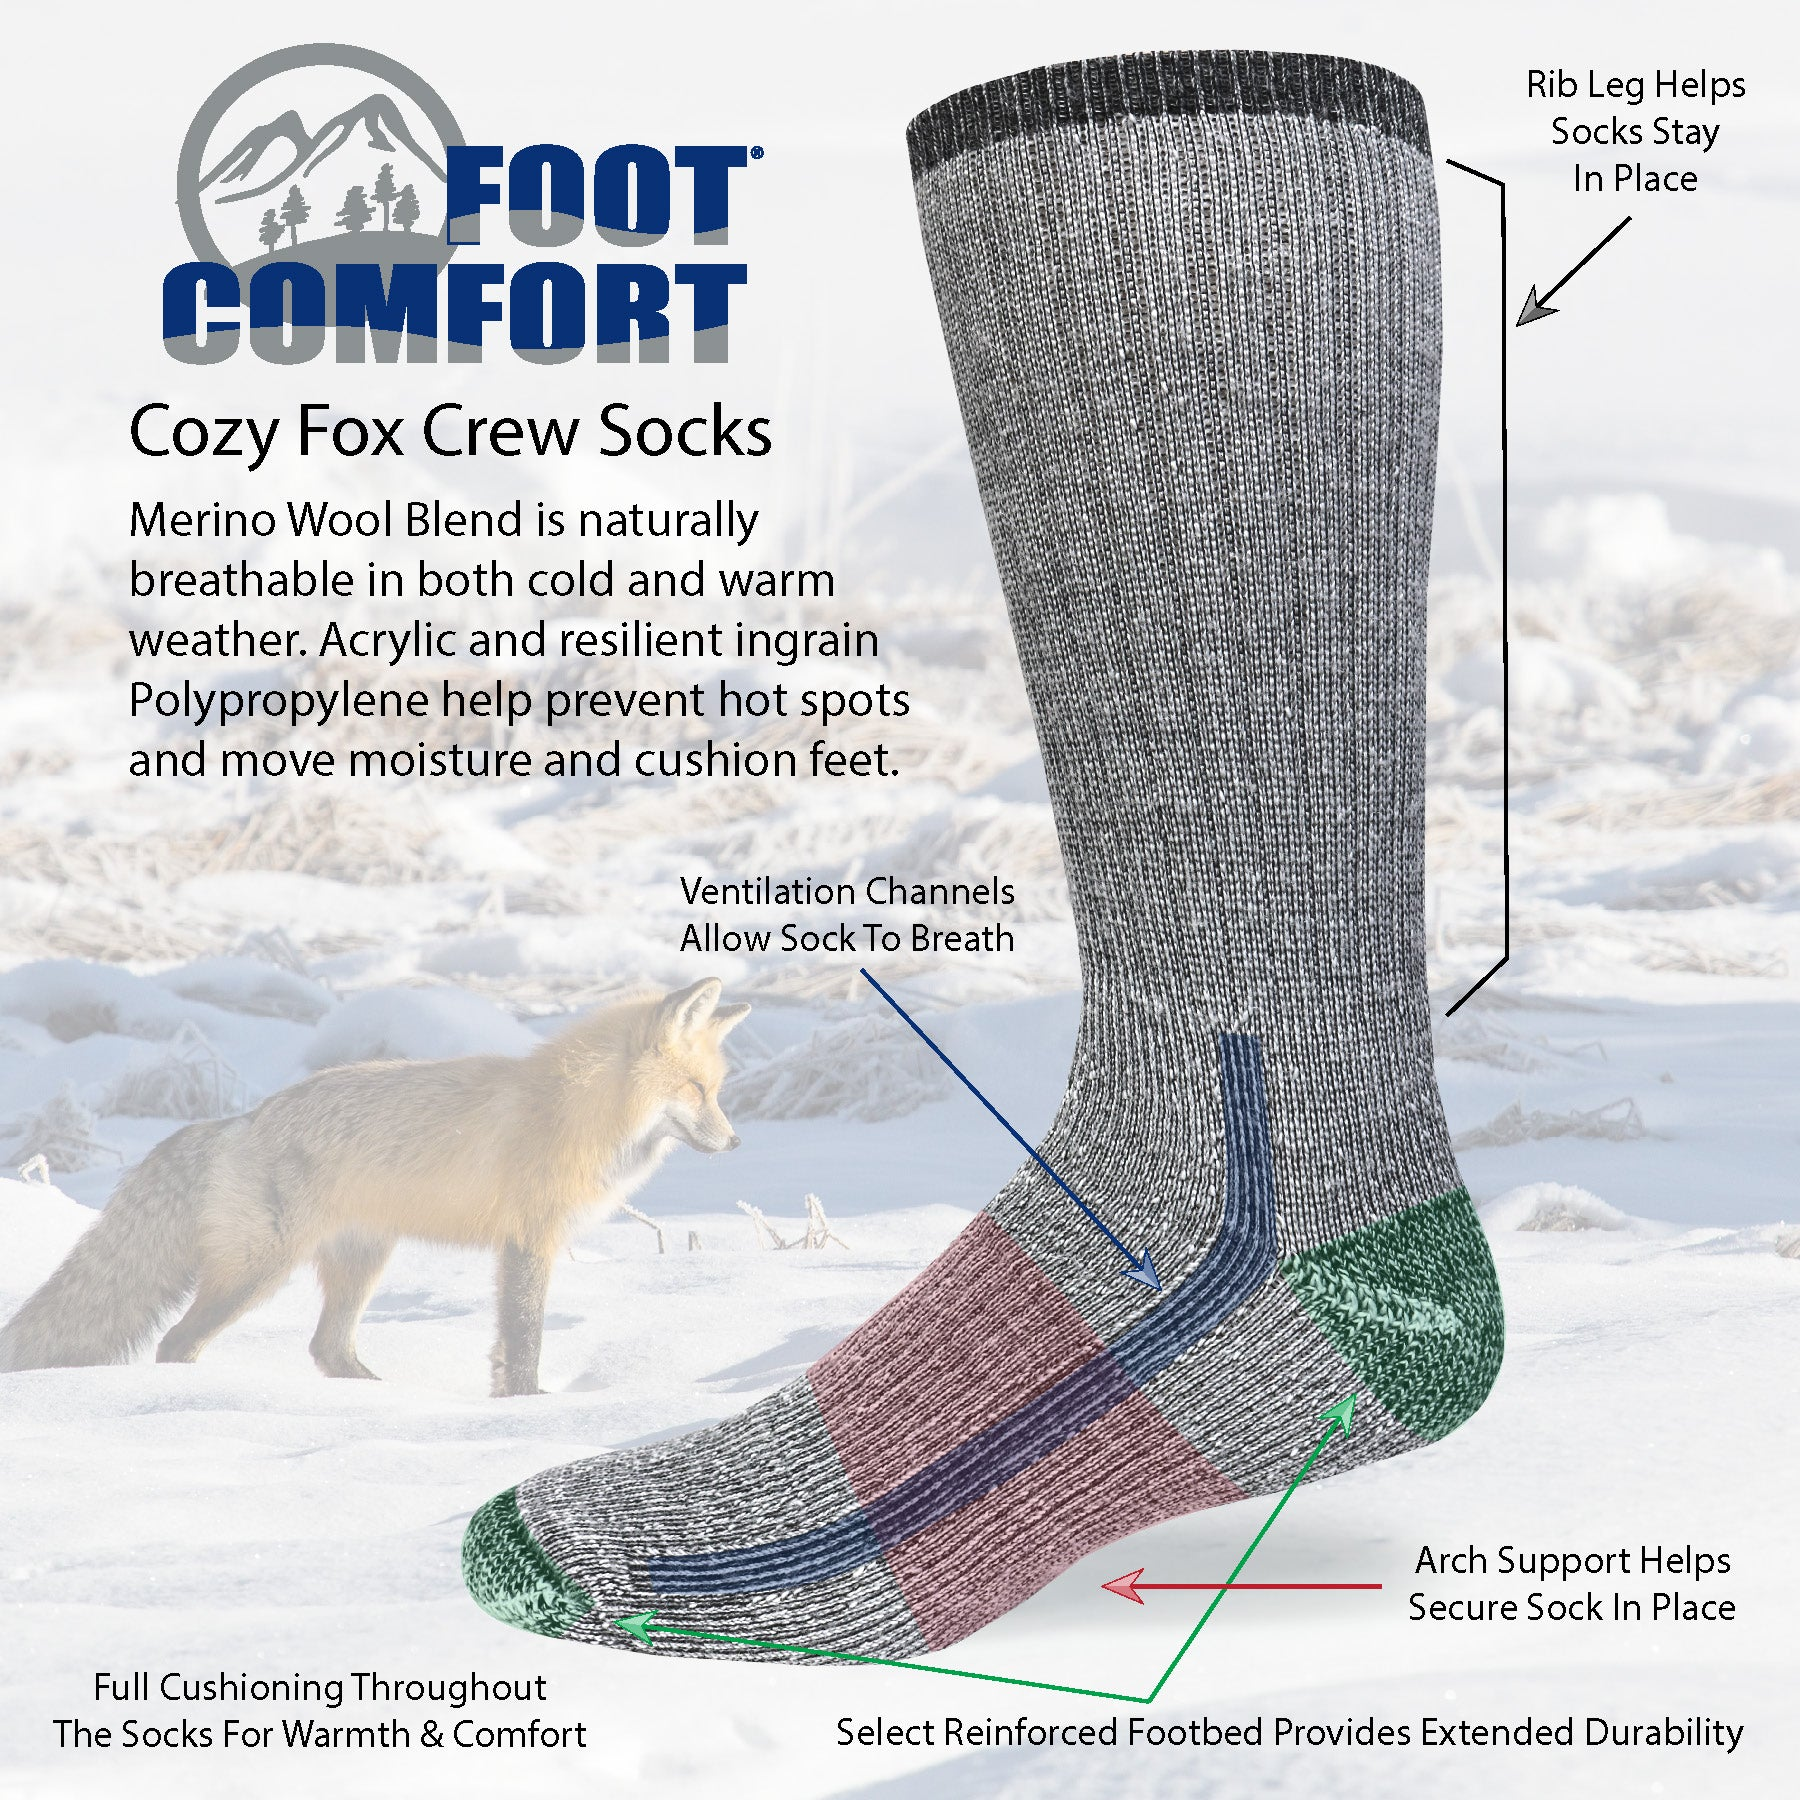 Foot Comfort Cozy Fox Crew Socks